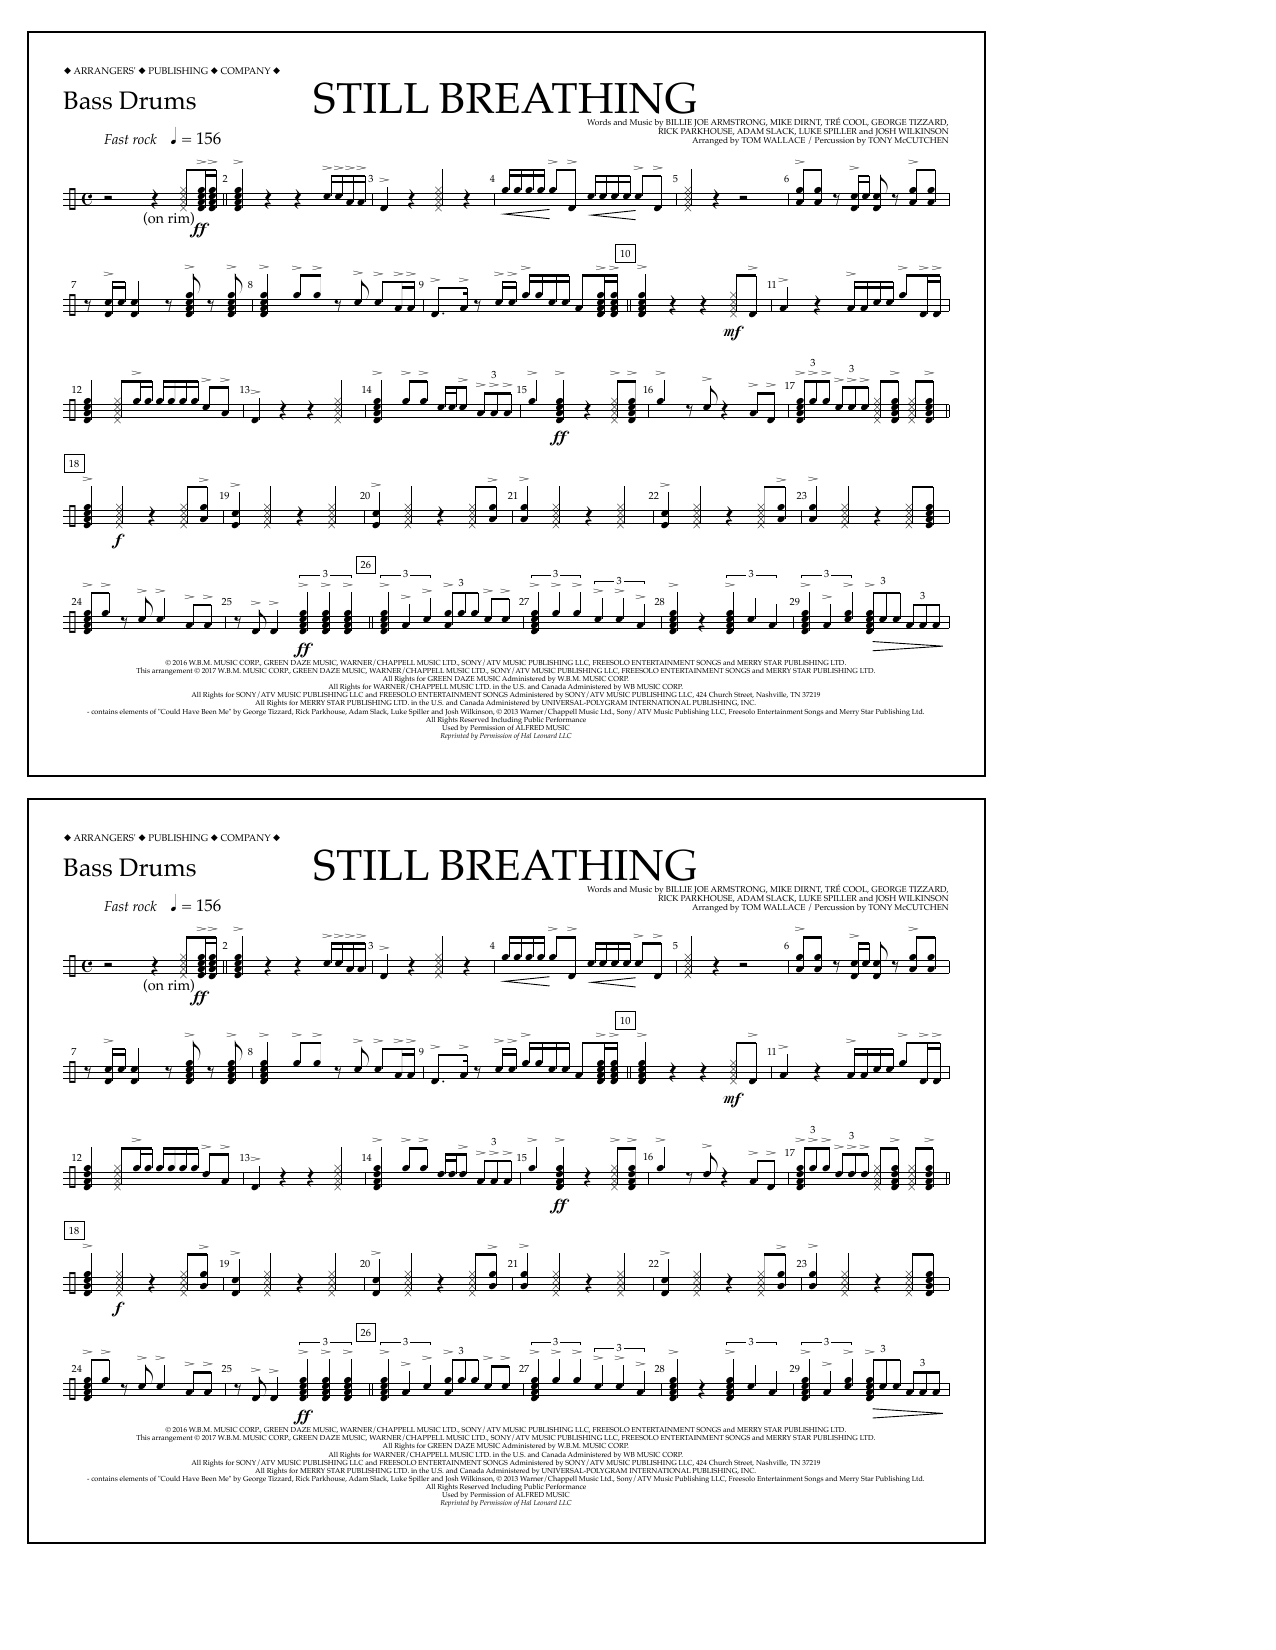 Still Breathing - Bass Drums Sheet Music